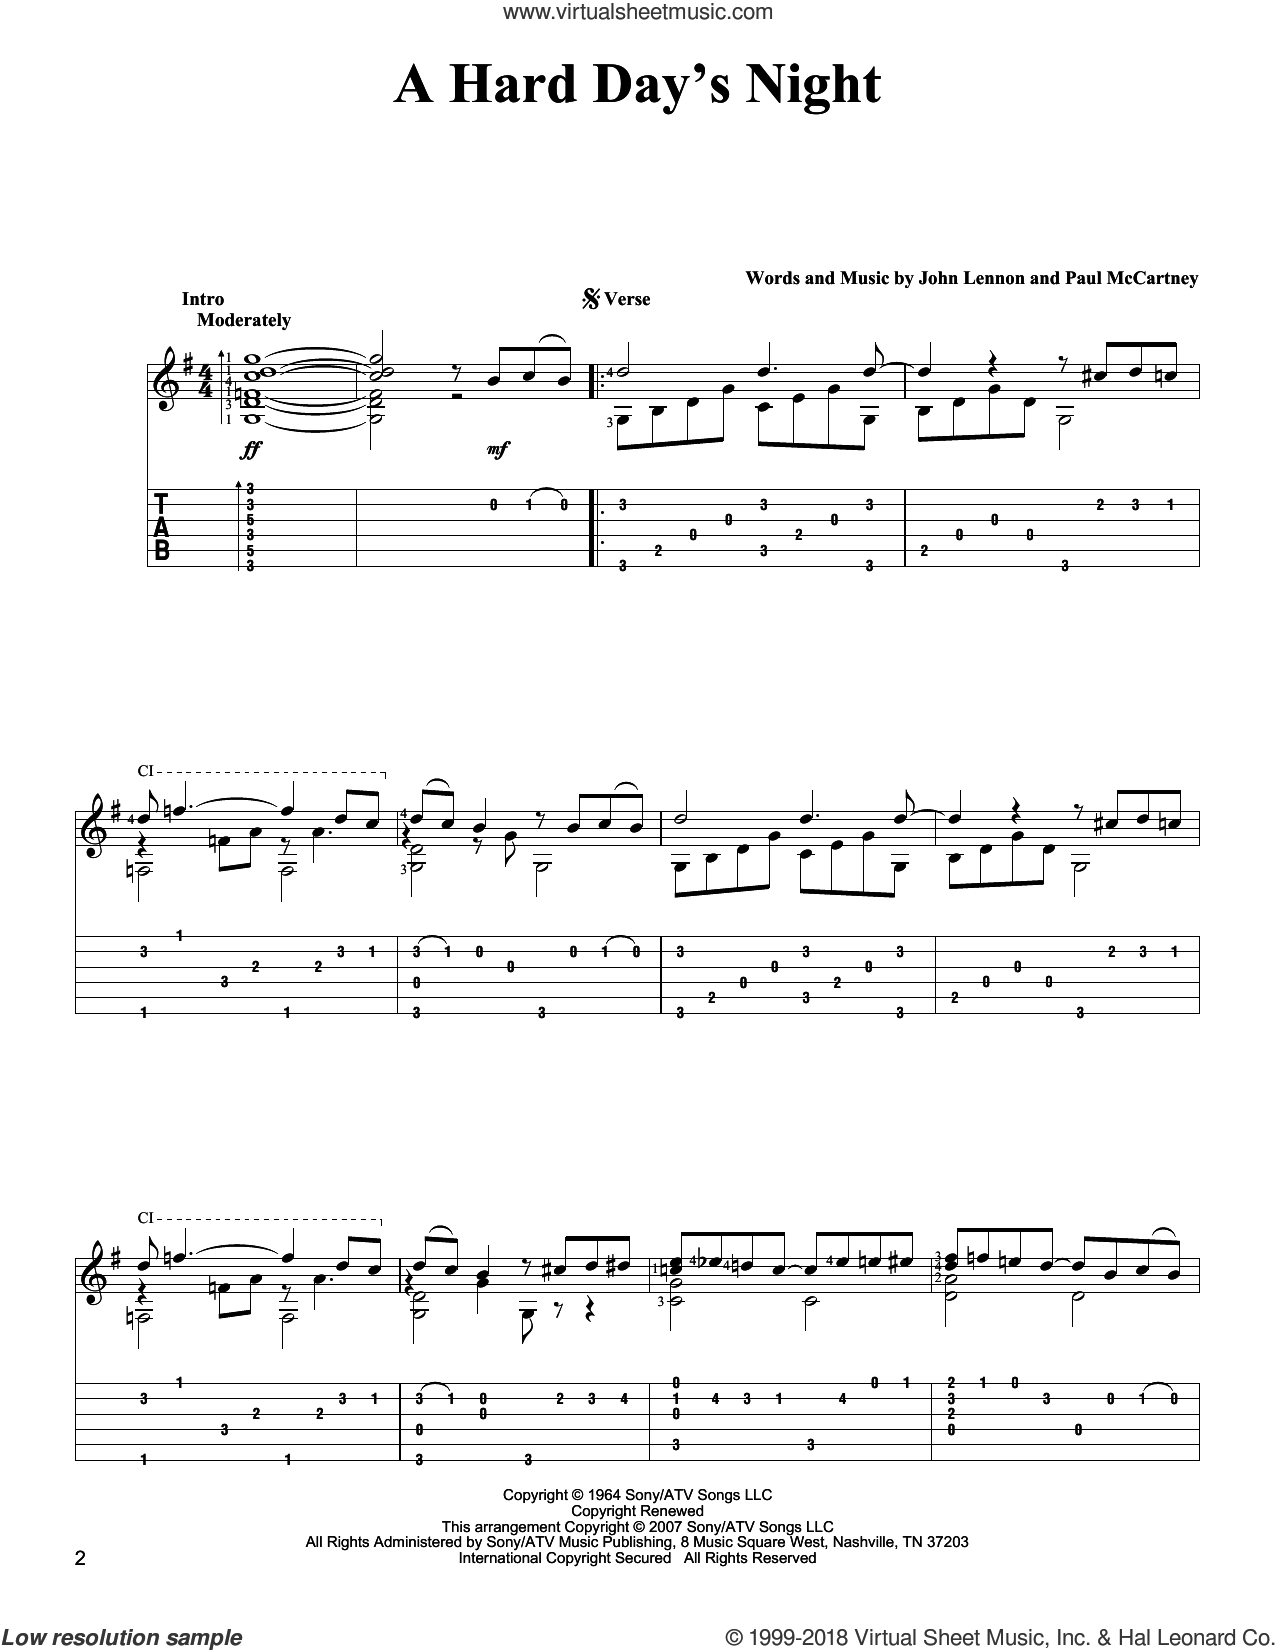 A Hard Day's Night sheet music for guitar solo by The Beatles, John Lennon and Paul McCartney, intermediate skill level